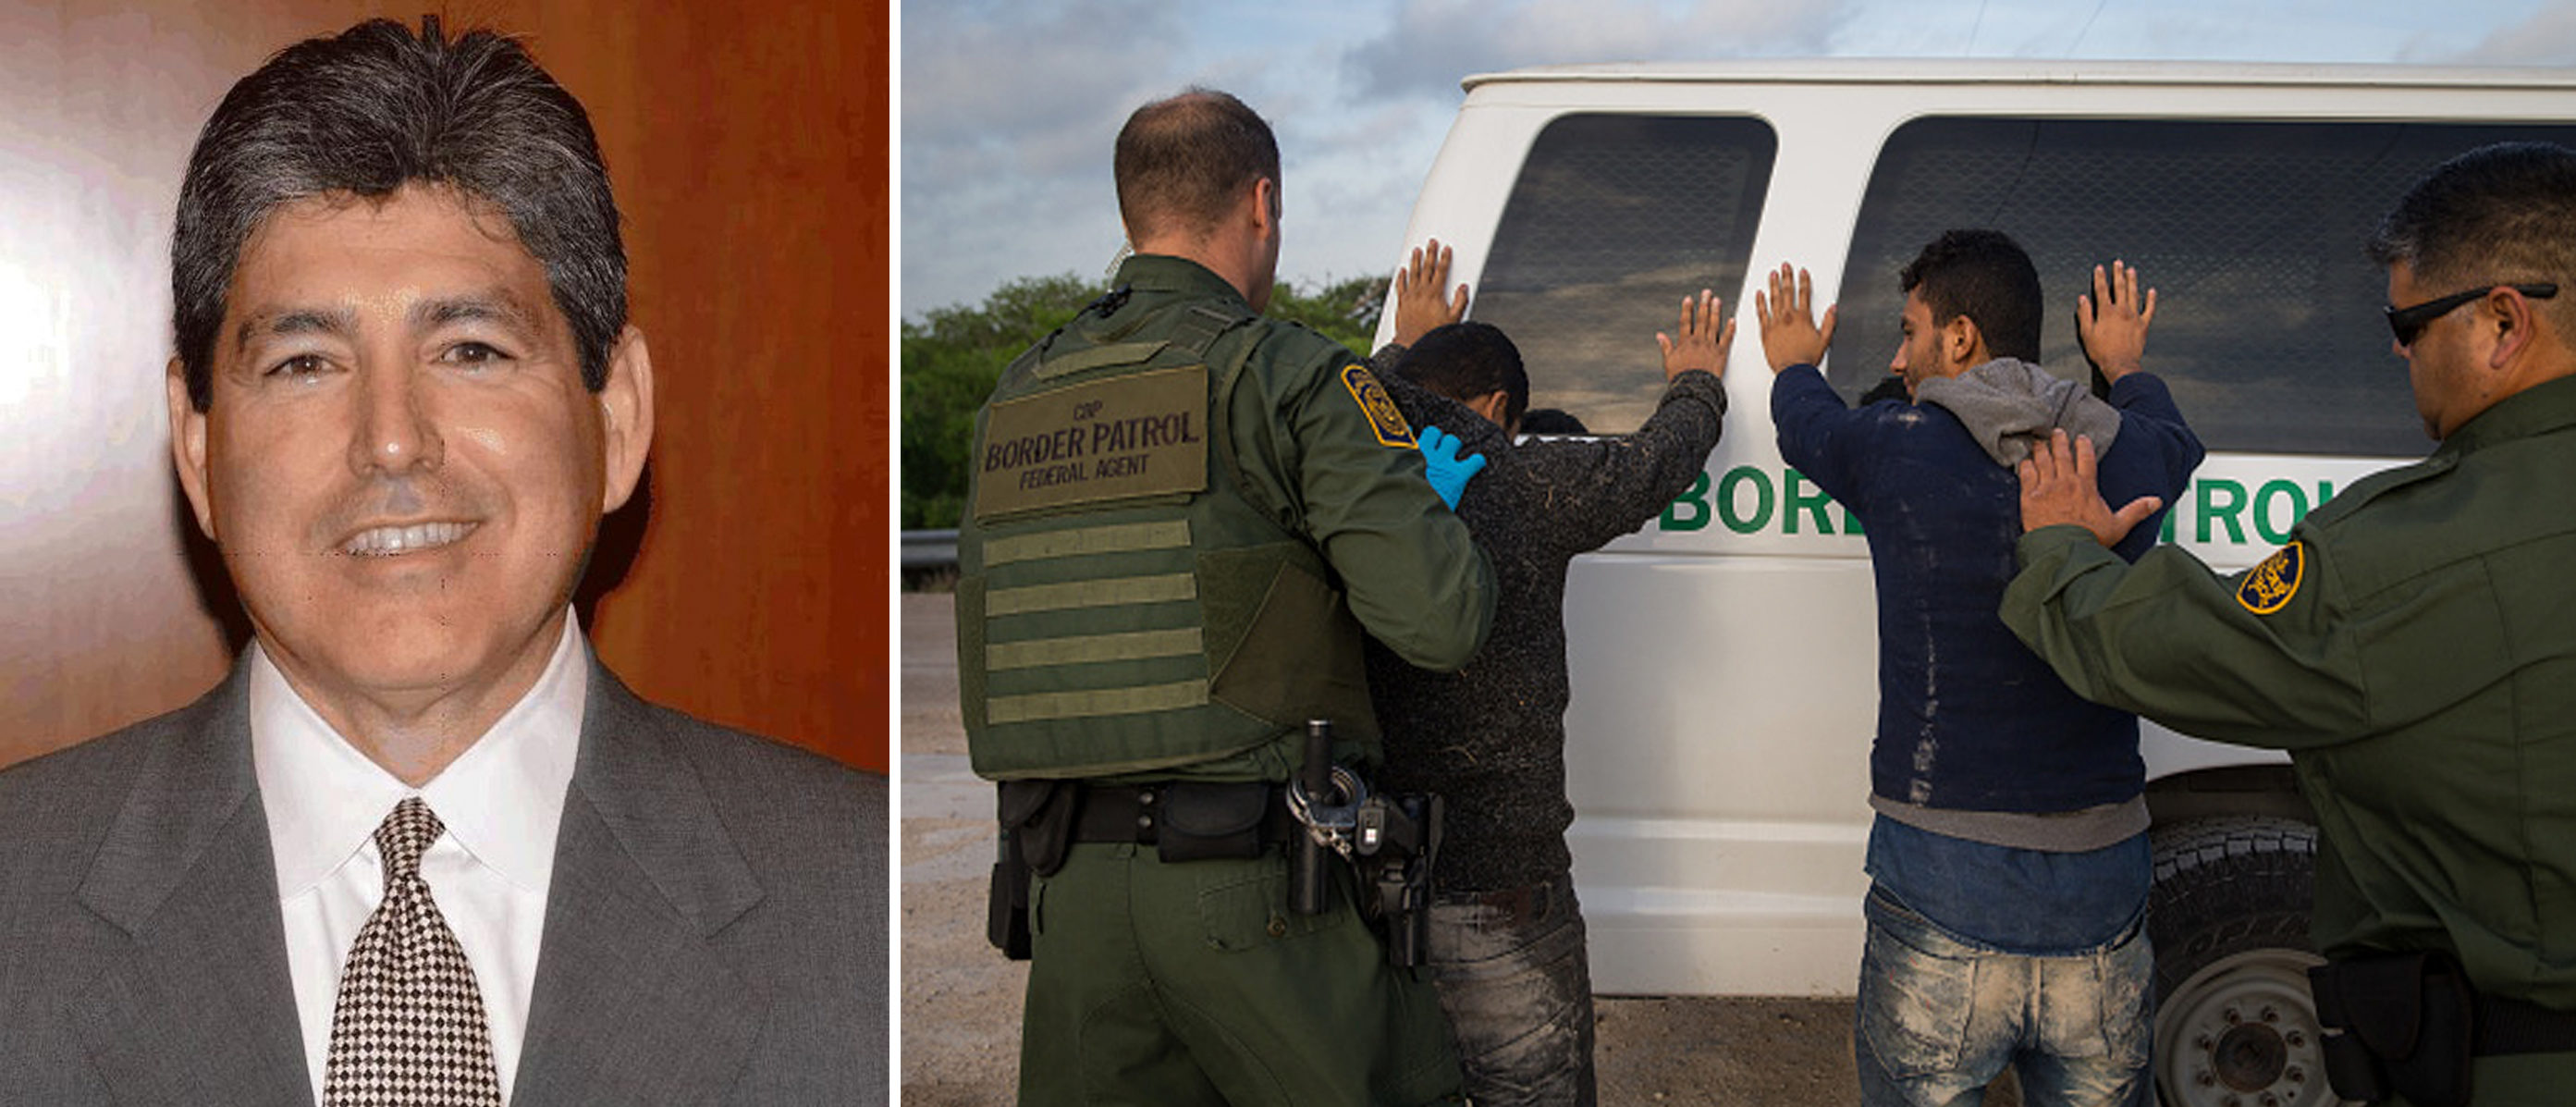 Deportation of families